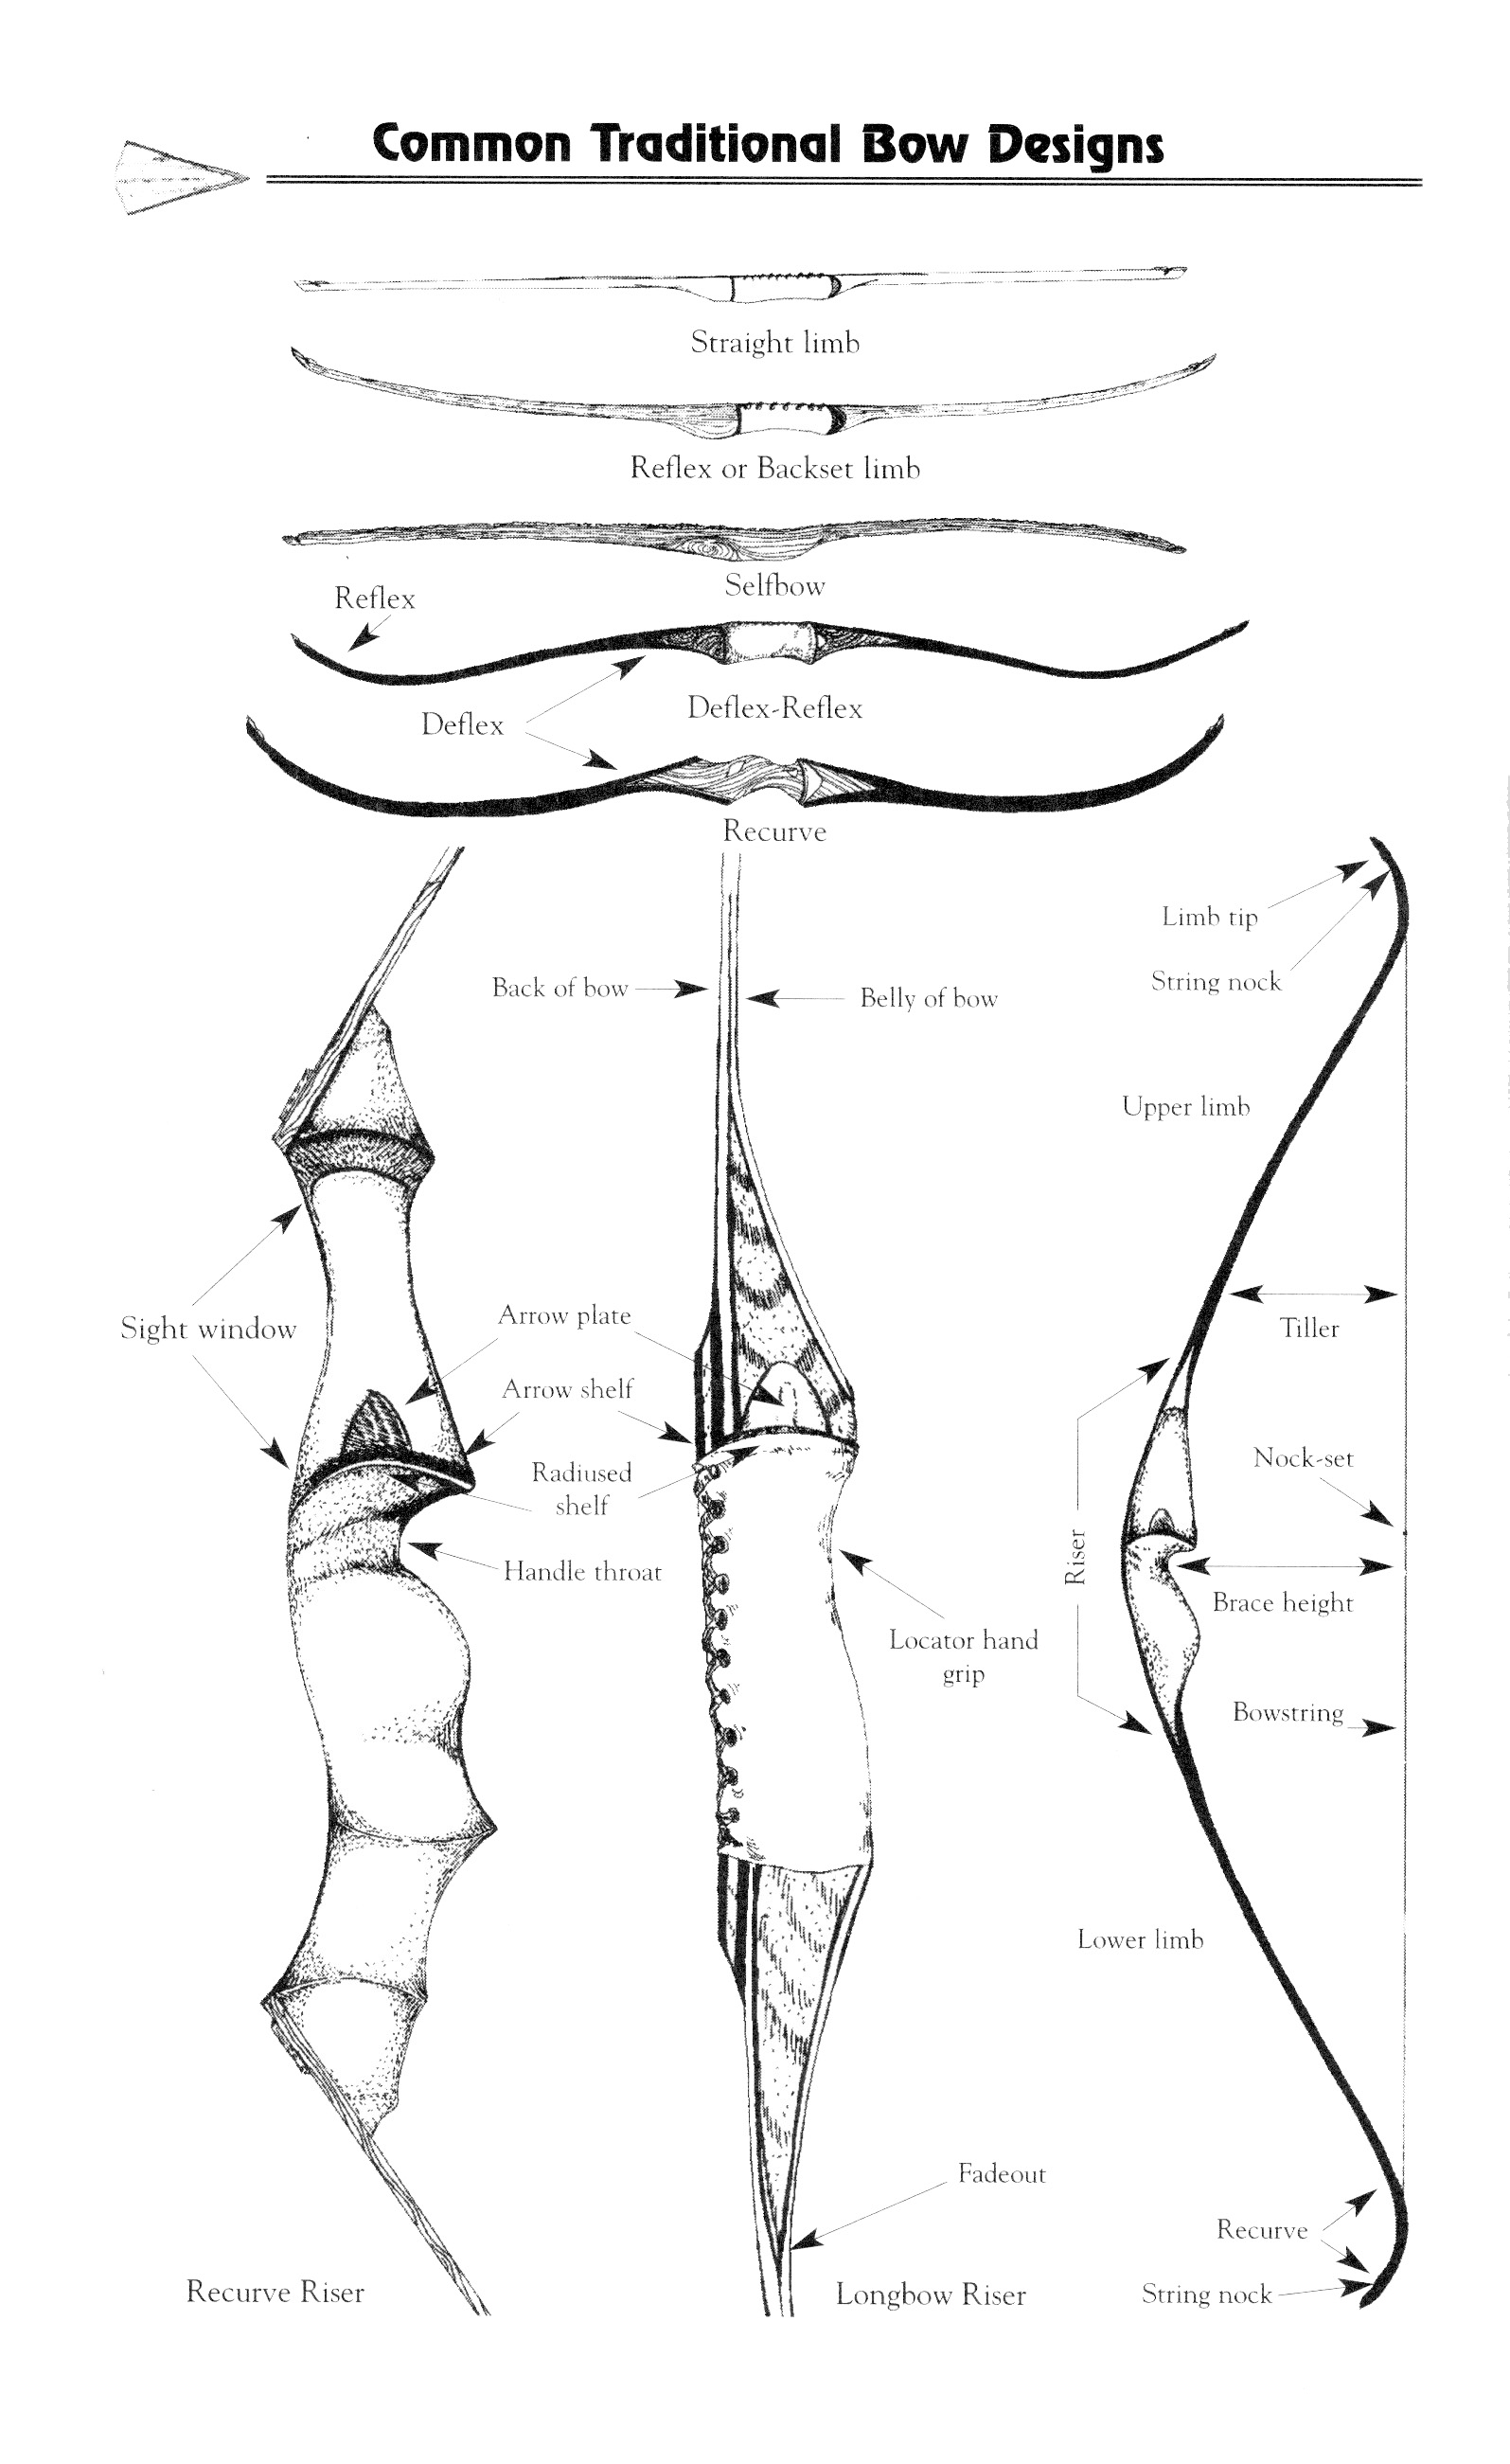 Common Traditional Bow Designs